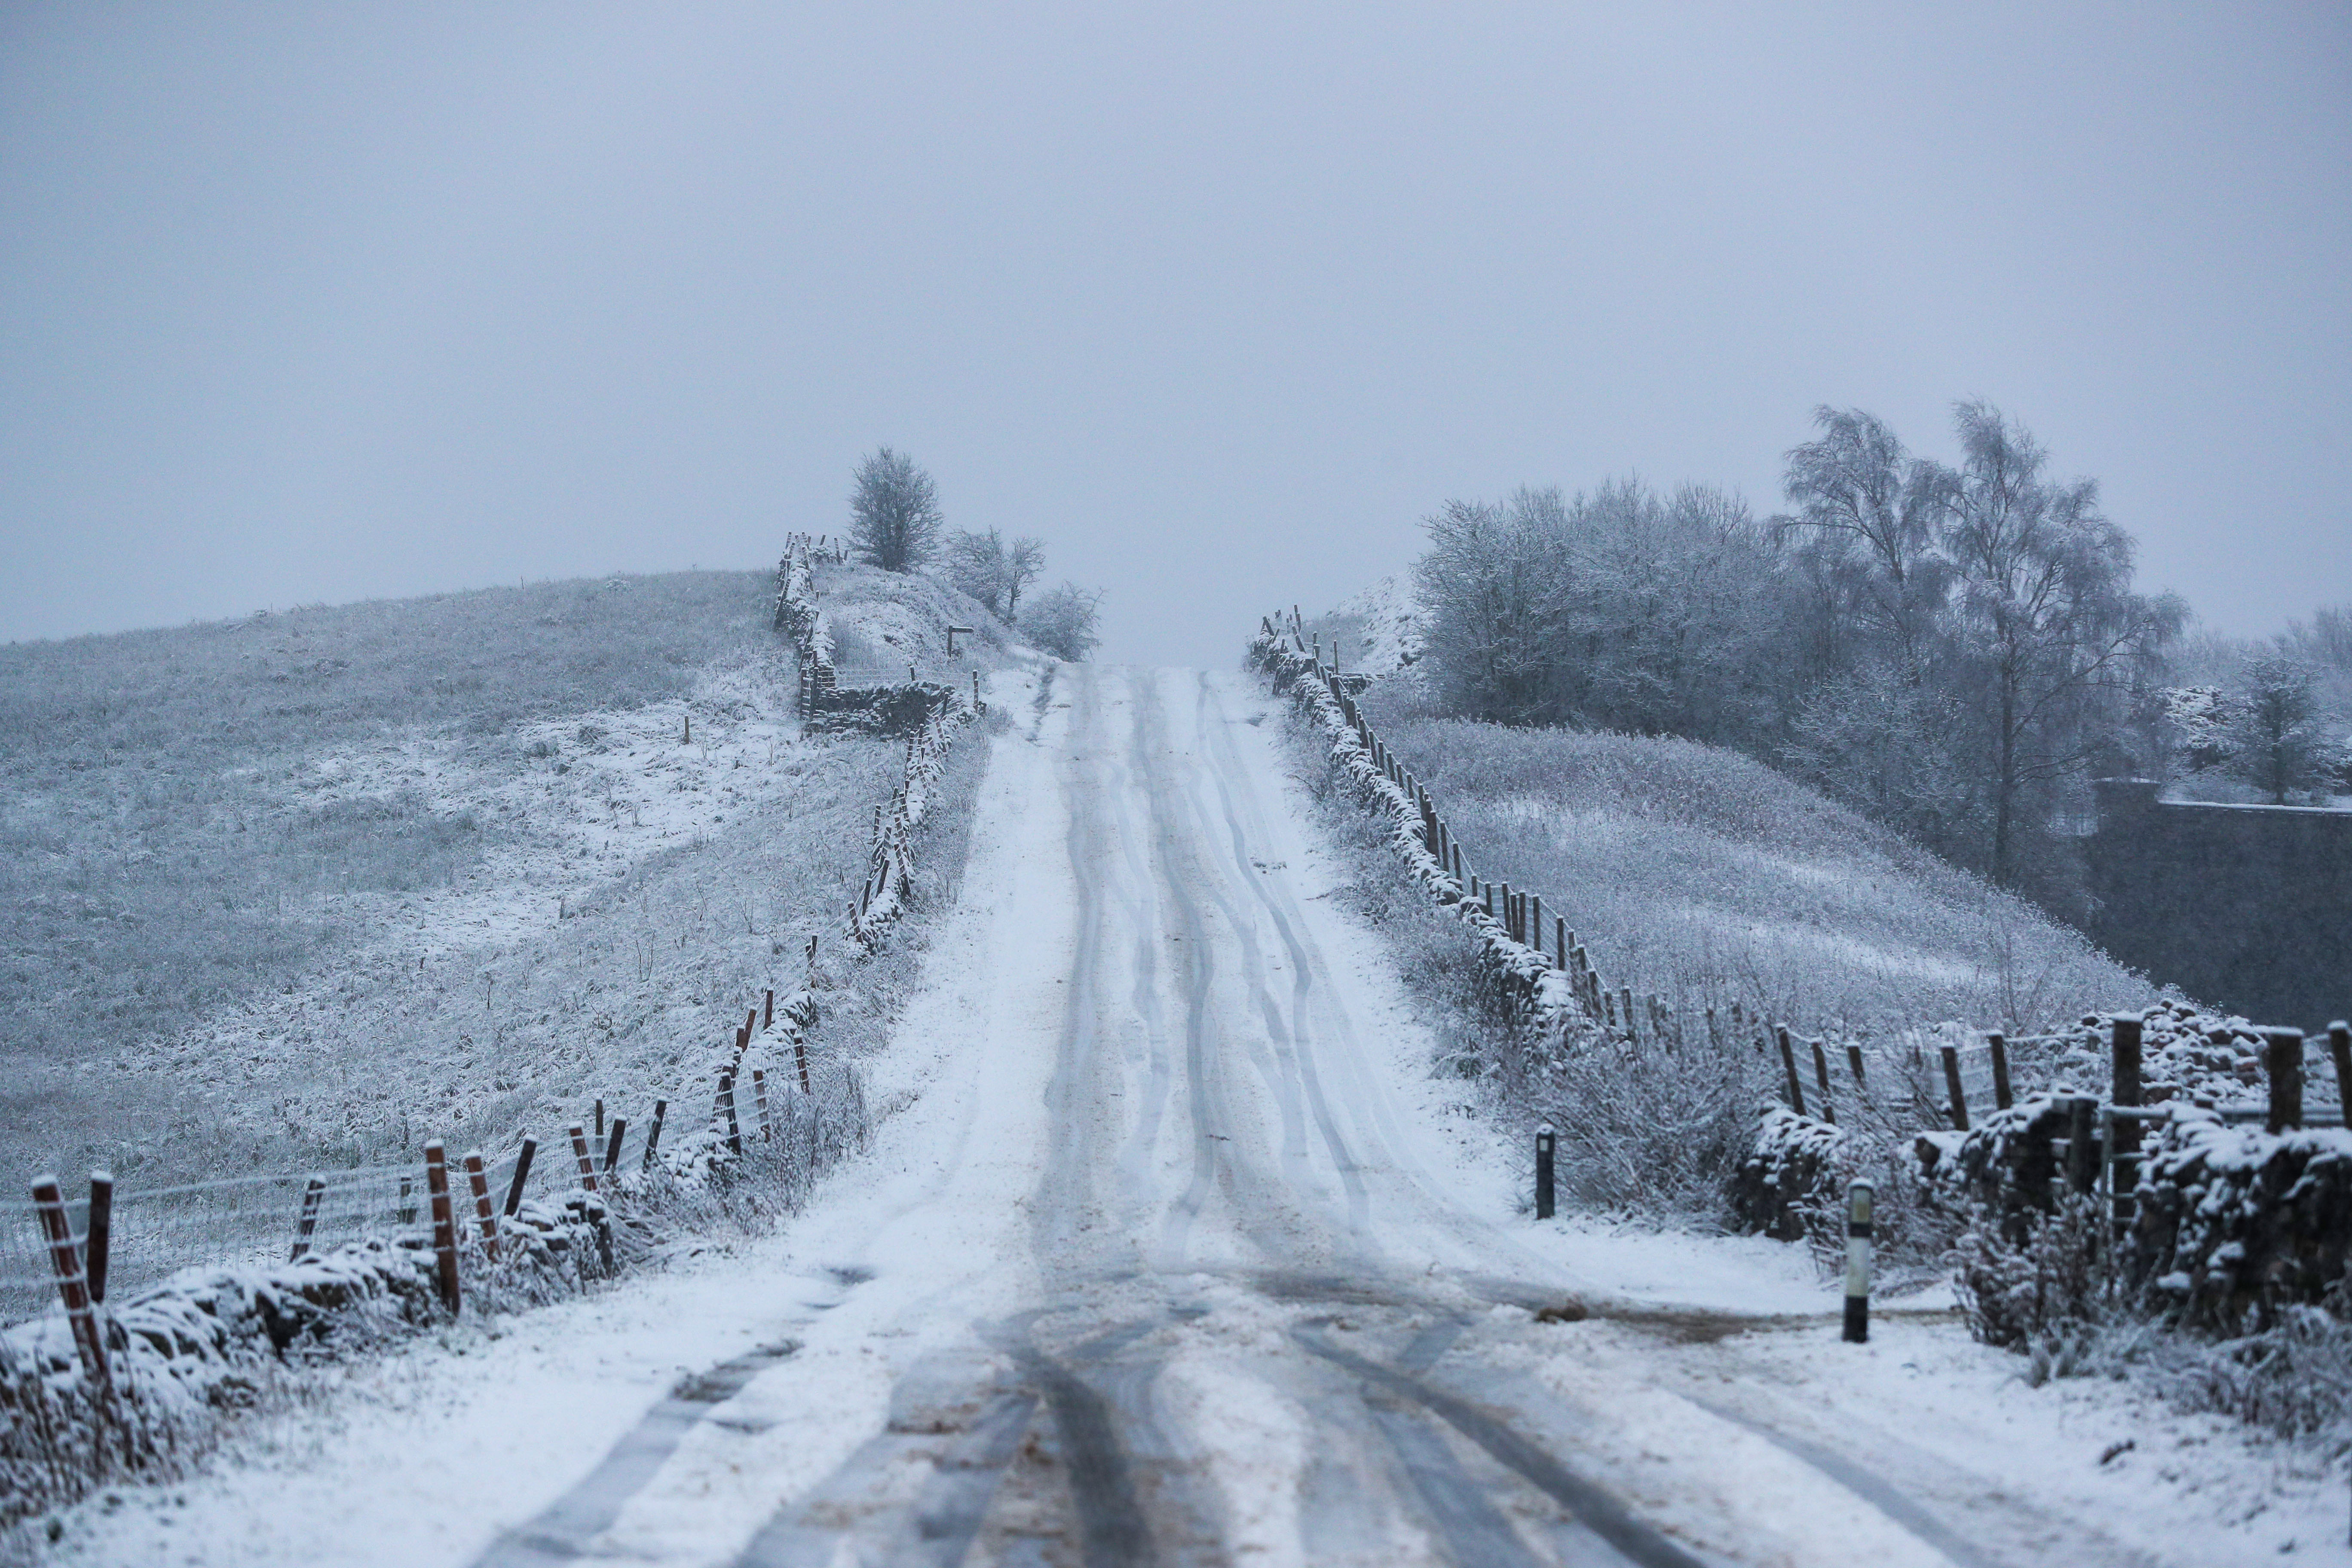 Snow falls on the hills of North Yorkshire with the UK expecting more wintry weather ahead of the first weekend of December, with warnings in place for ice and snow.